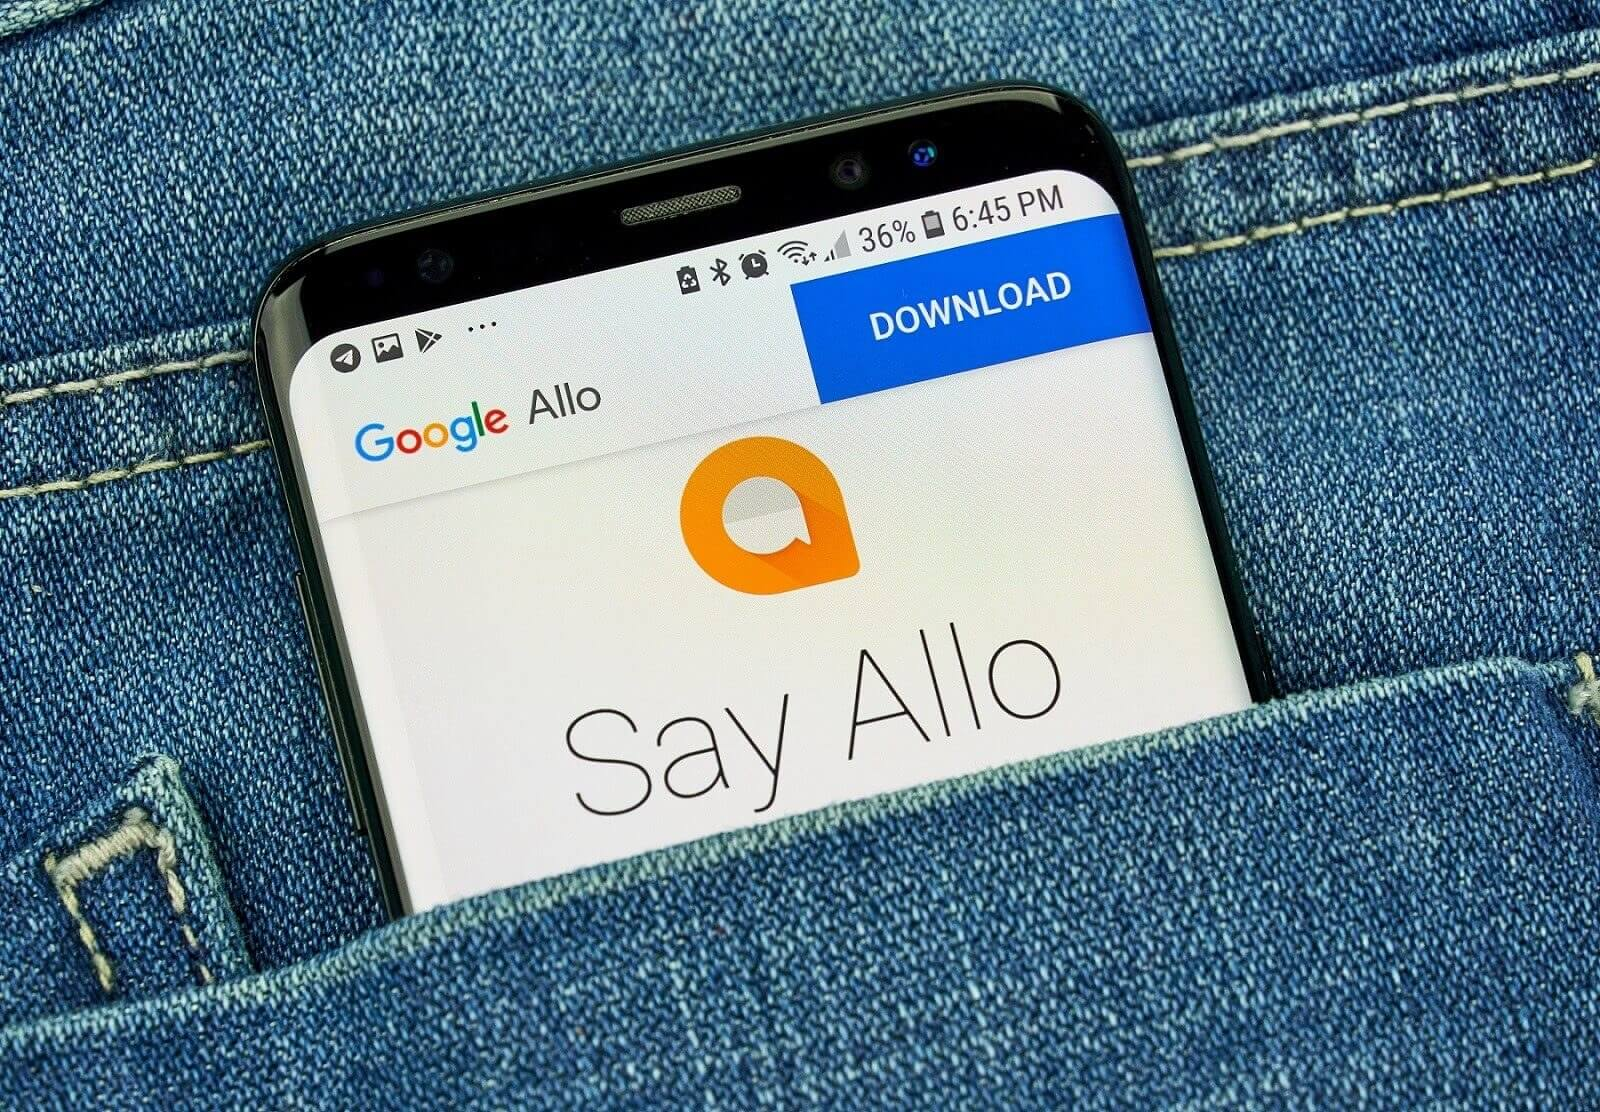 Google Allo is shutting down today